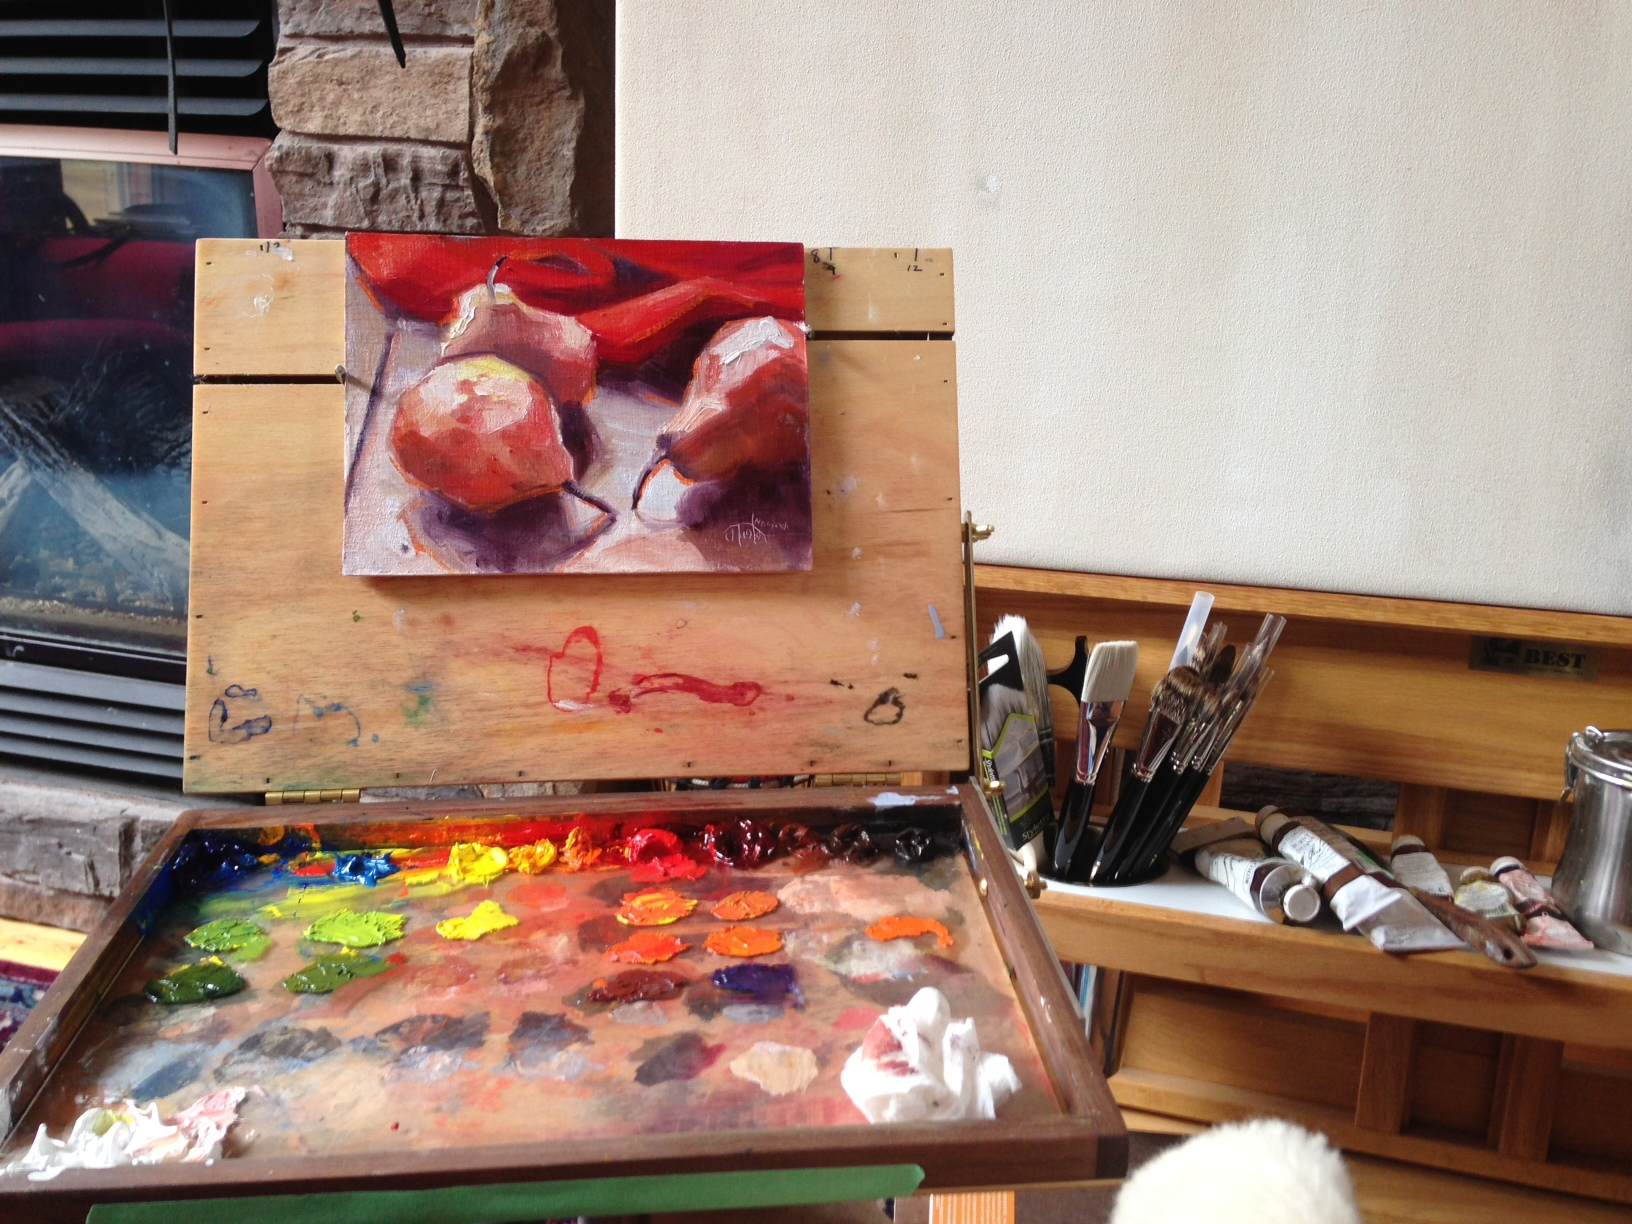 Janice Tanton's small painting setup beside the fire.